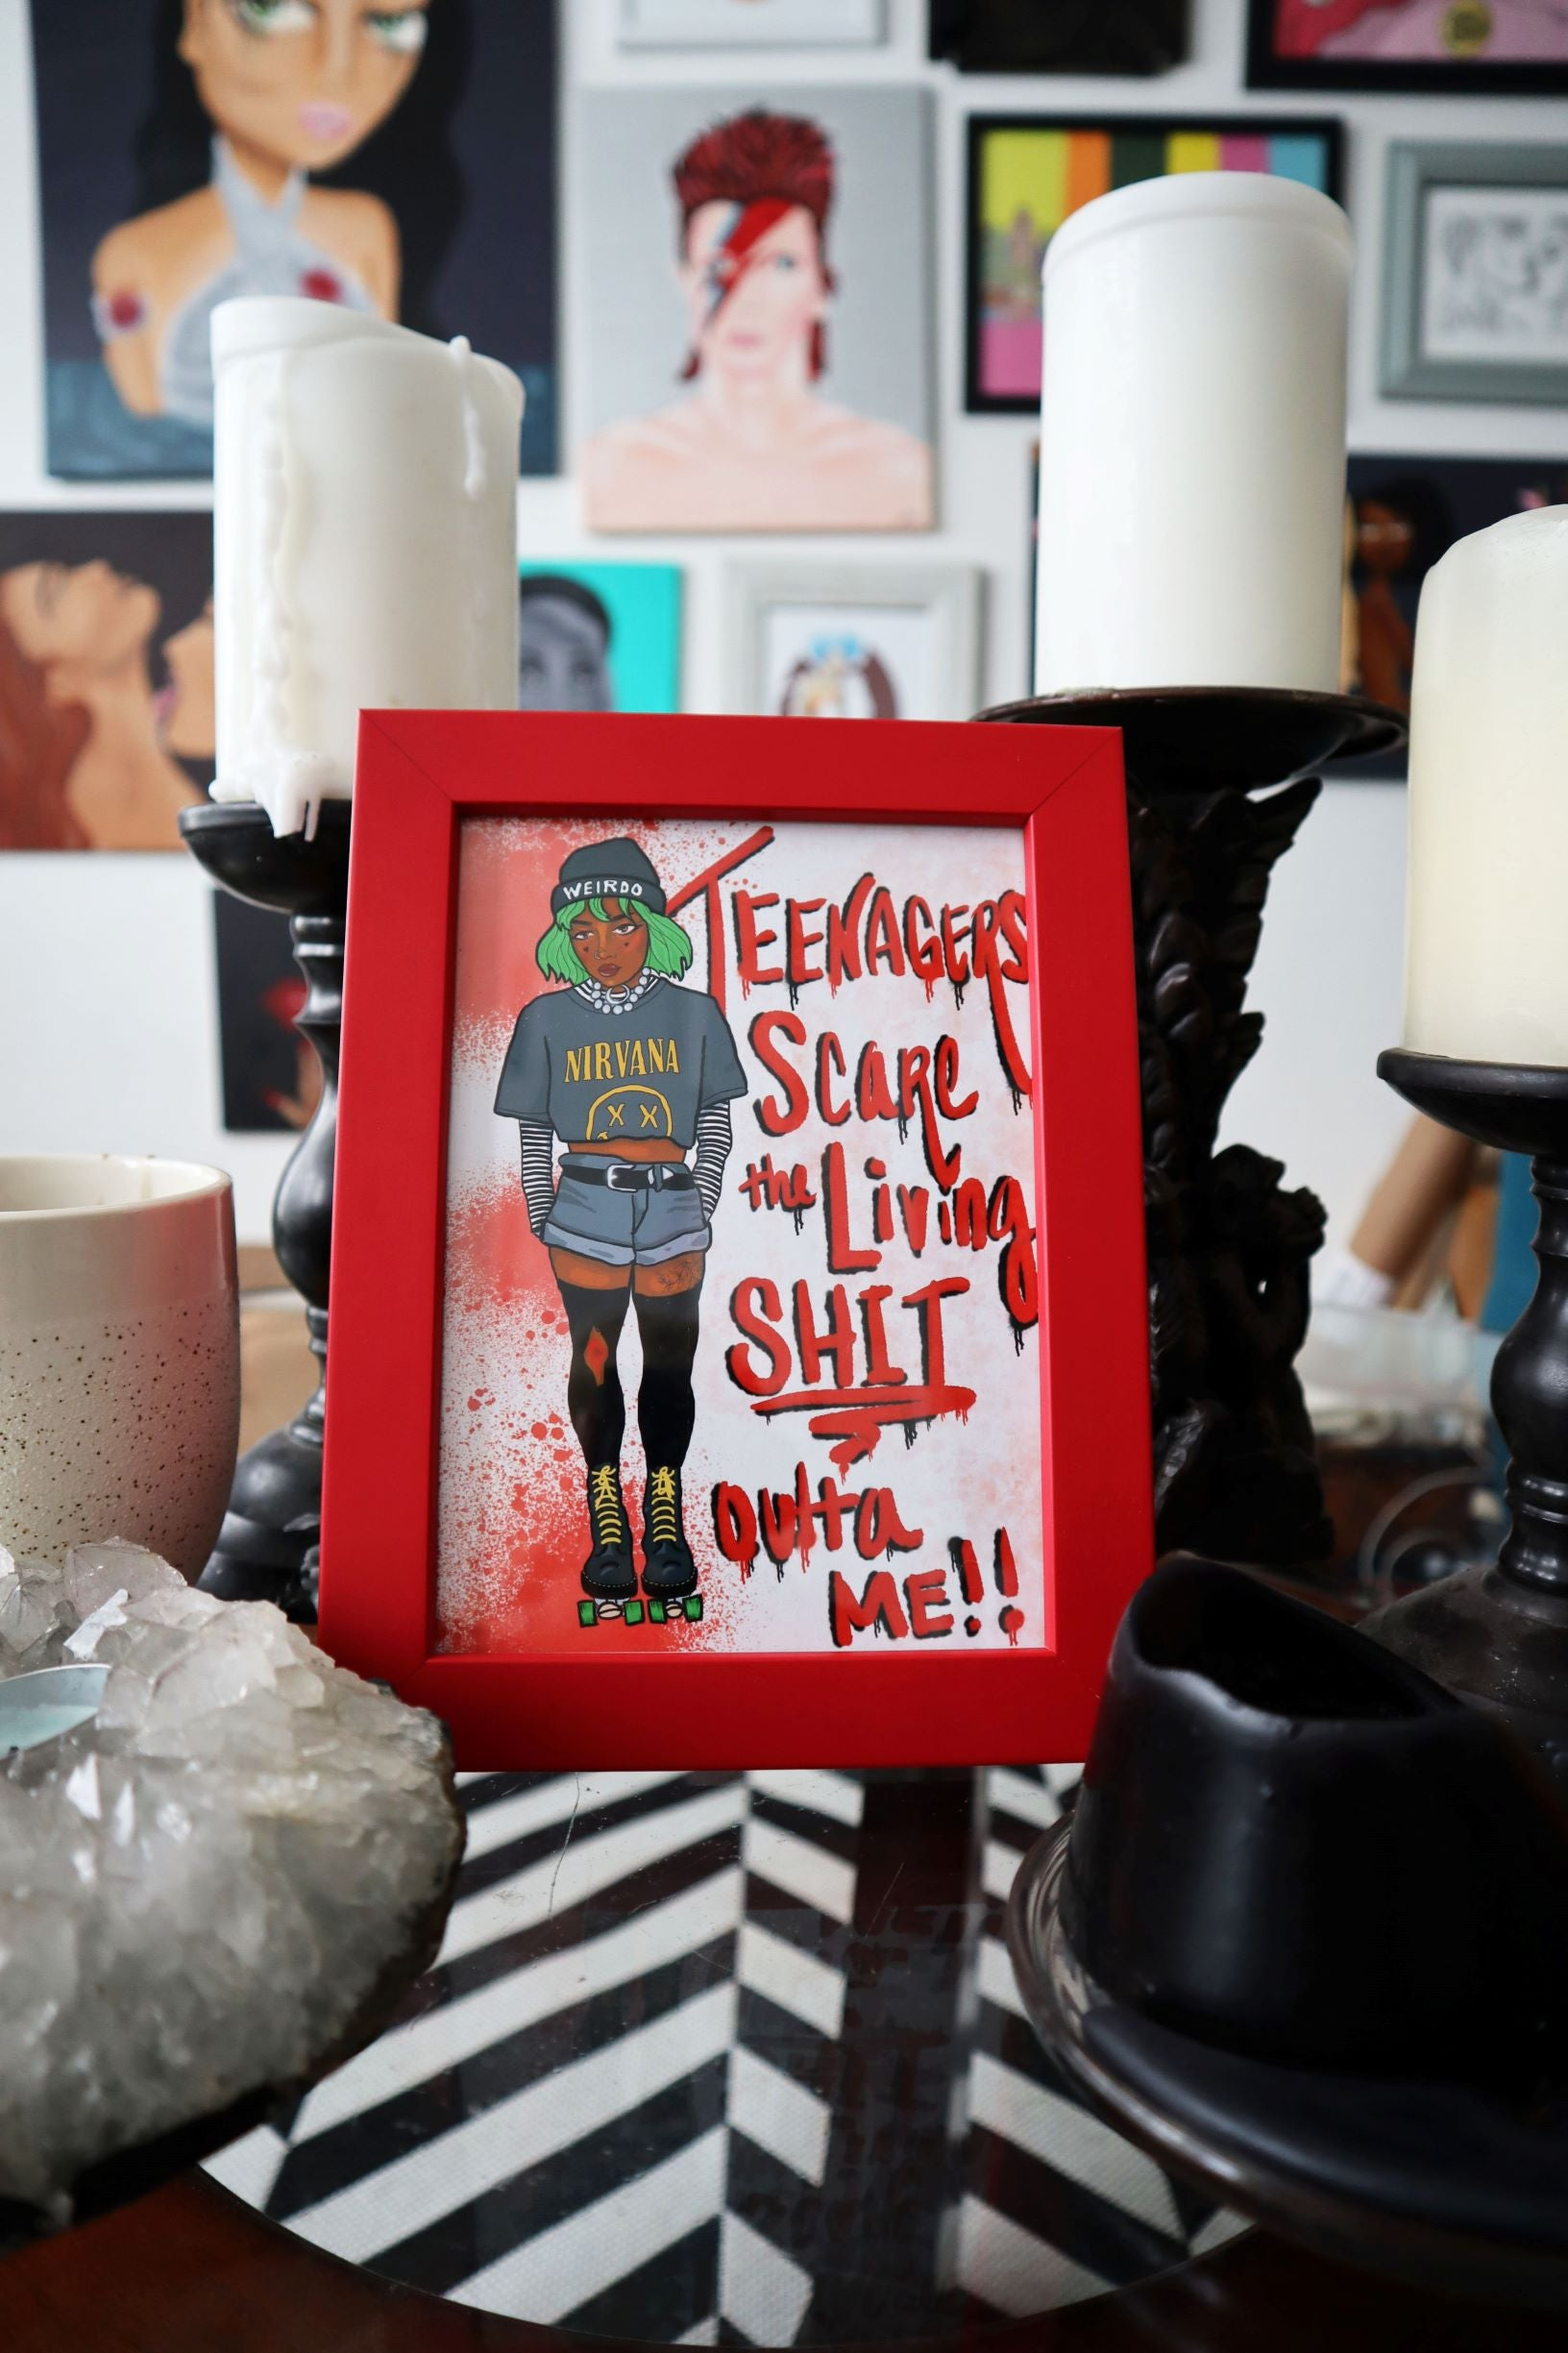 Teenagers Scare Me (Ebony) Print